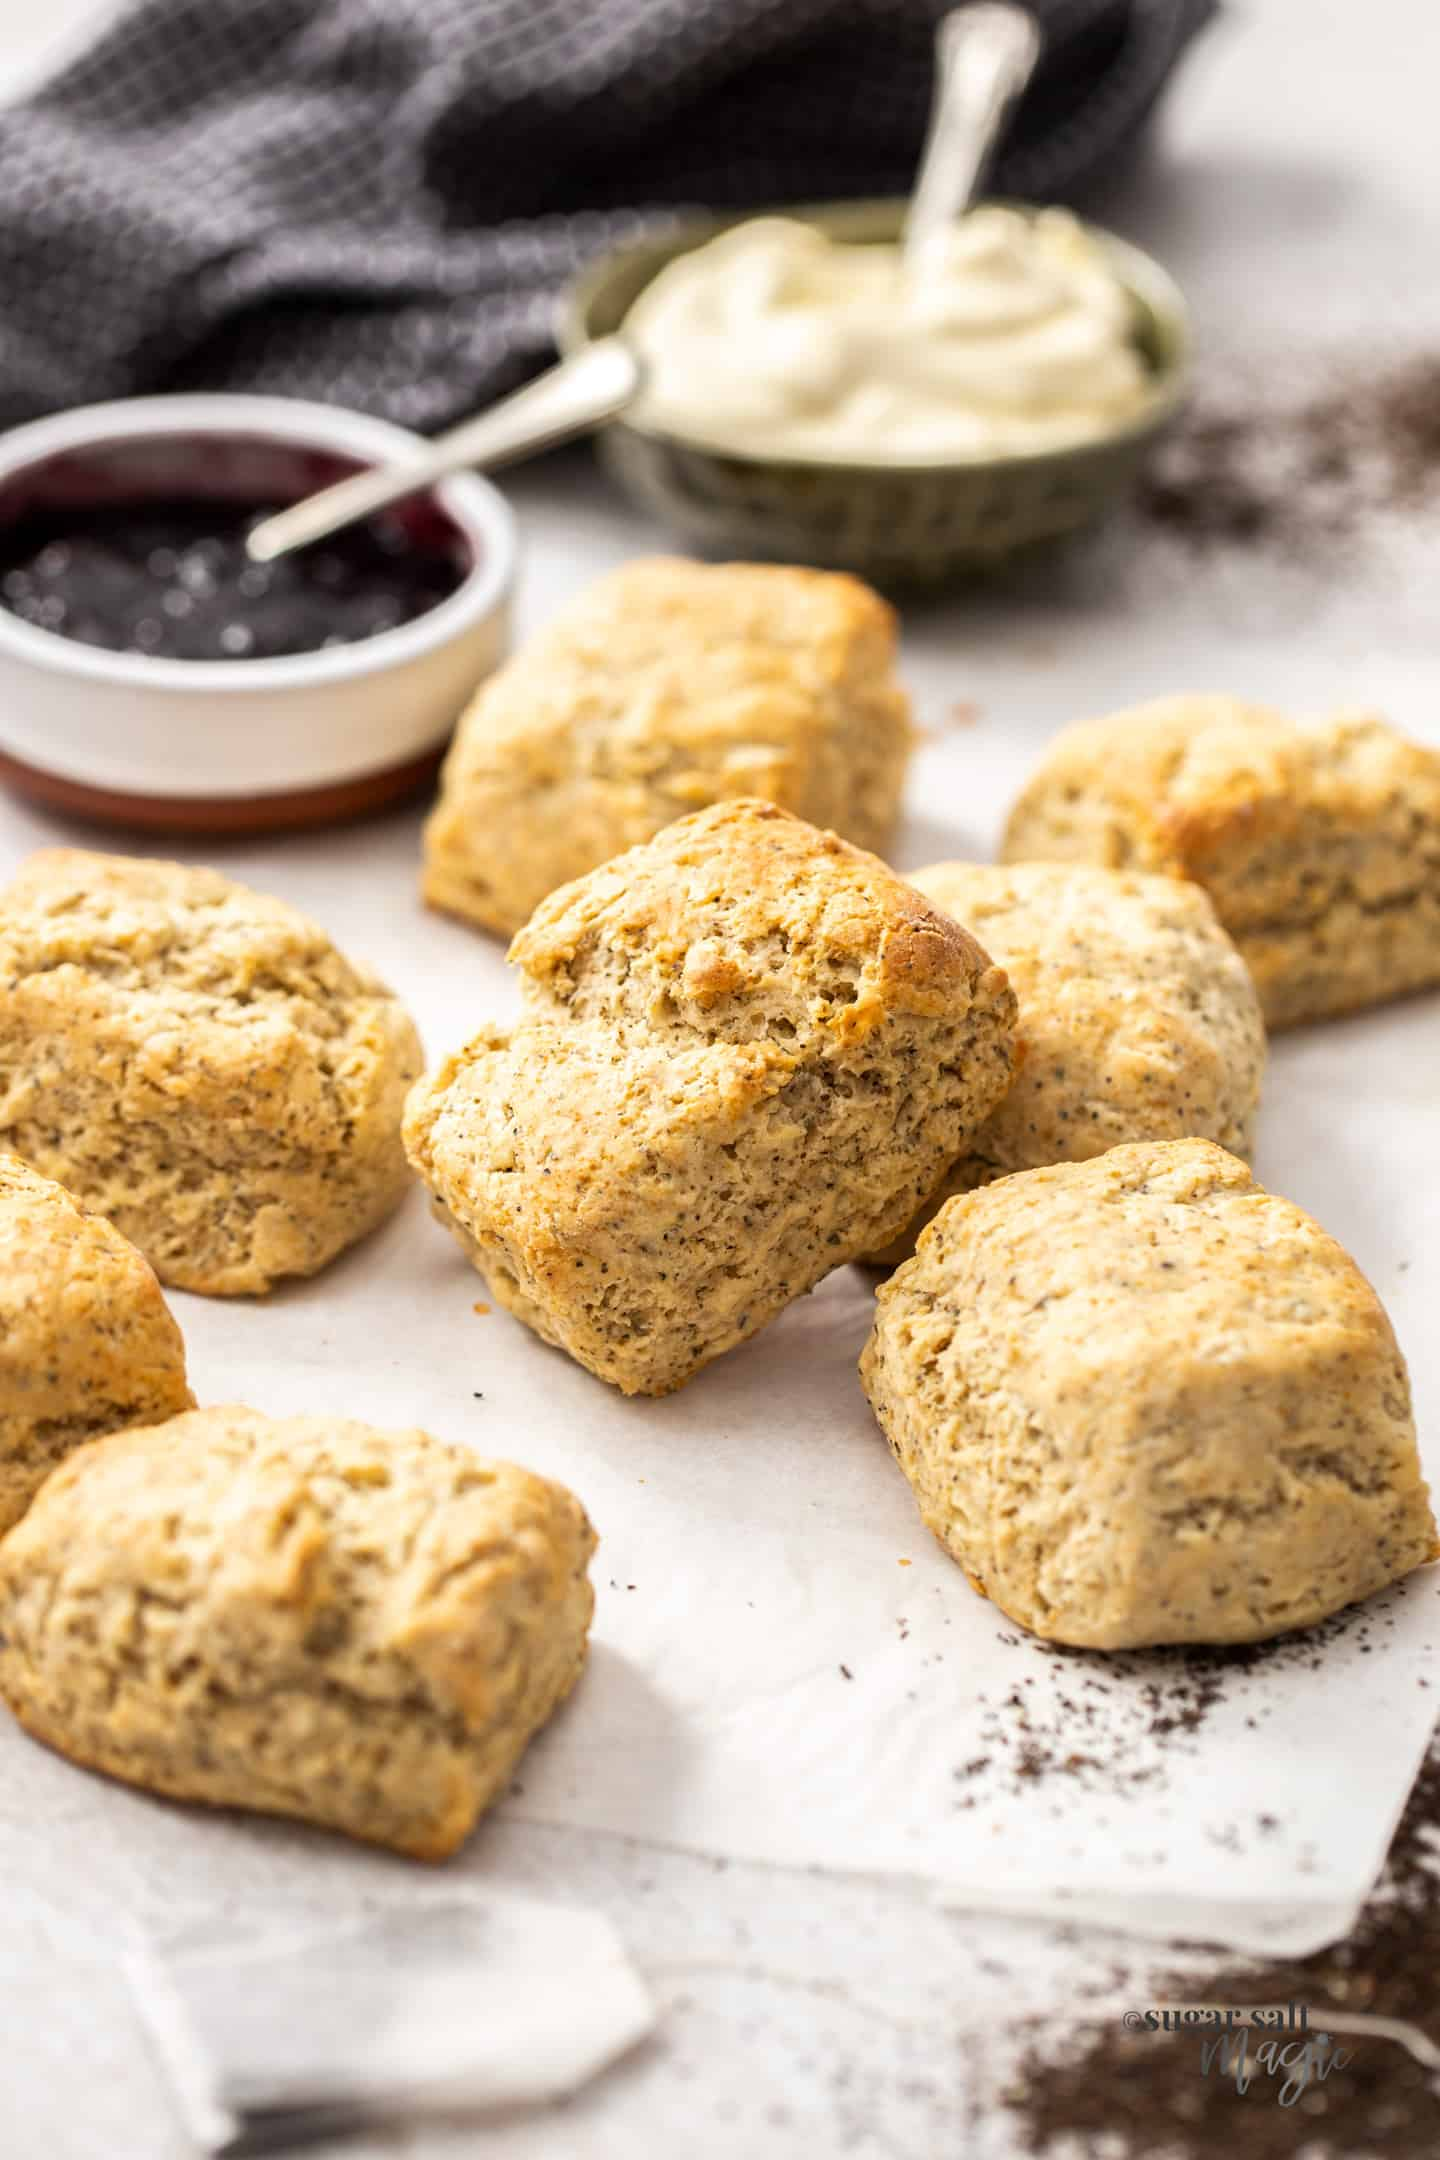 A batch of earl grey scones on a sheet of baking paper.